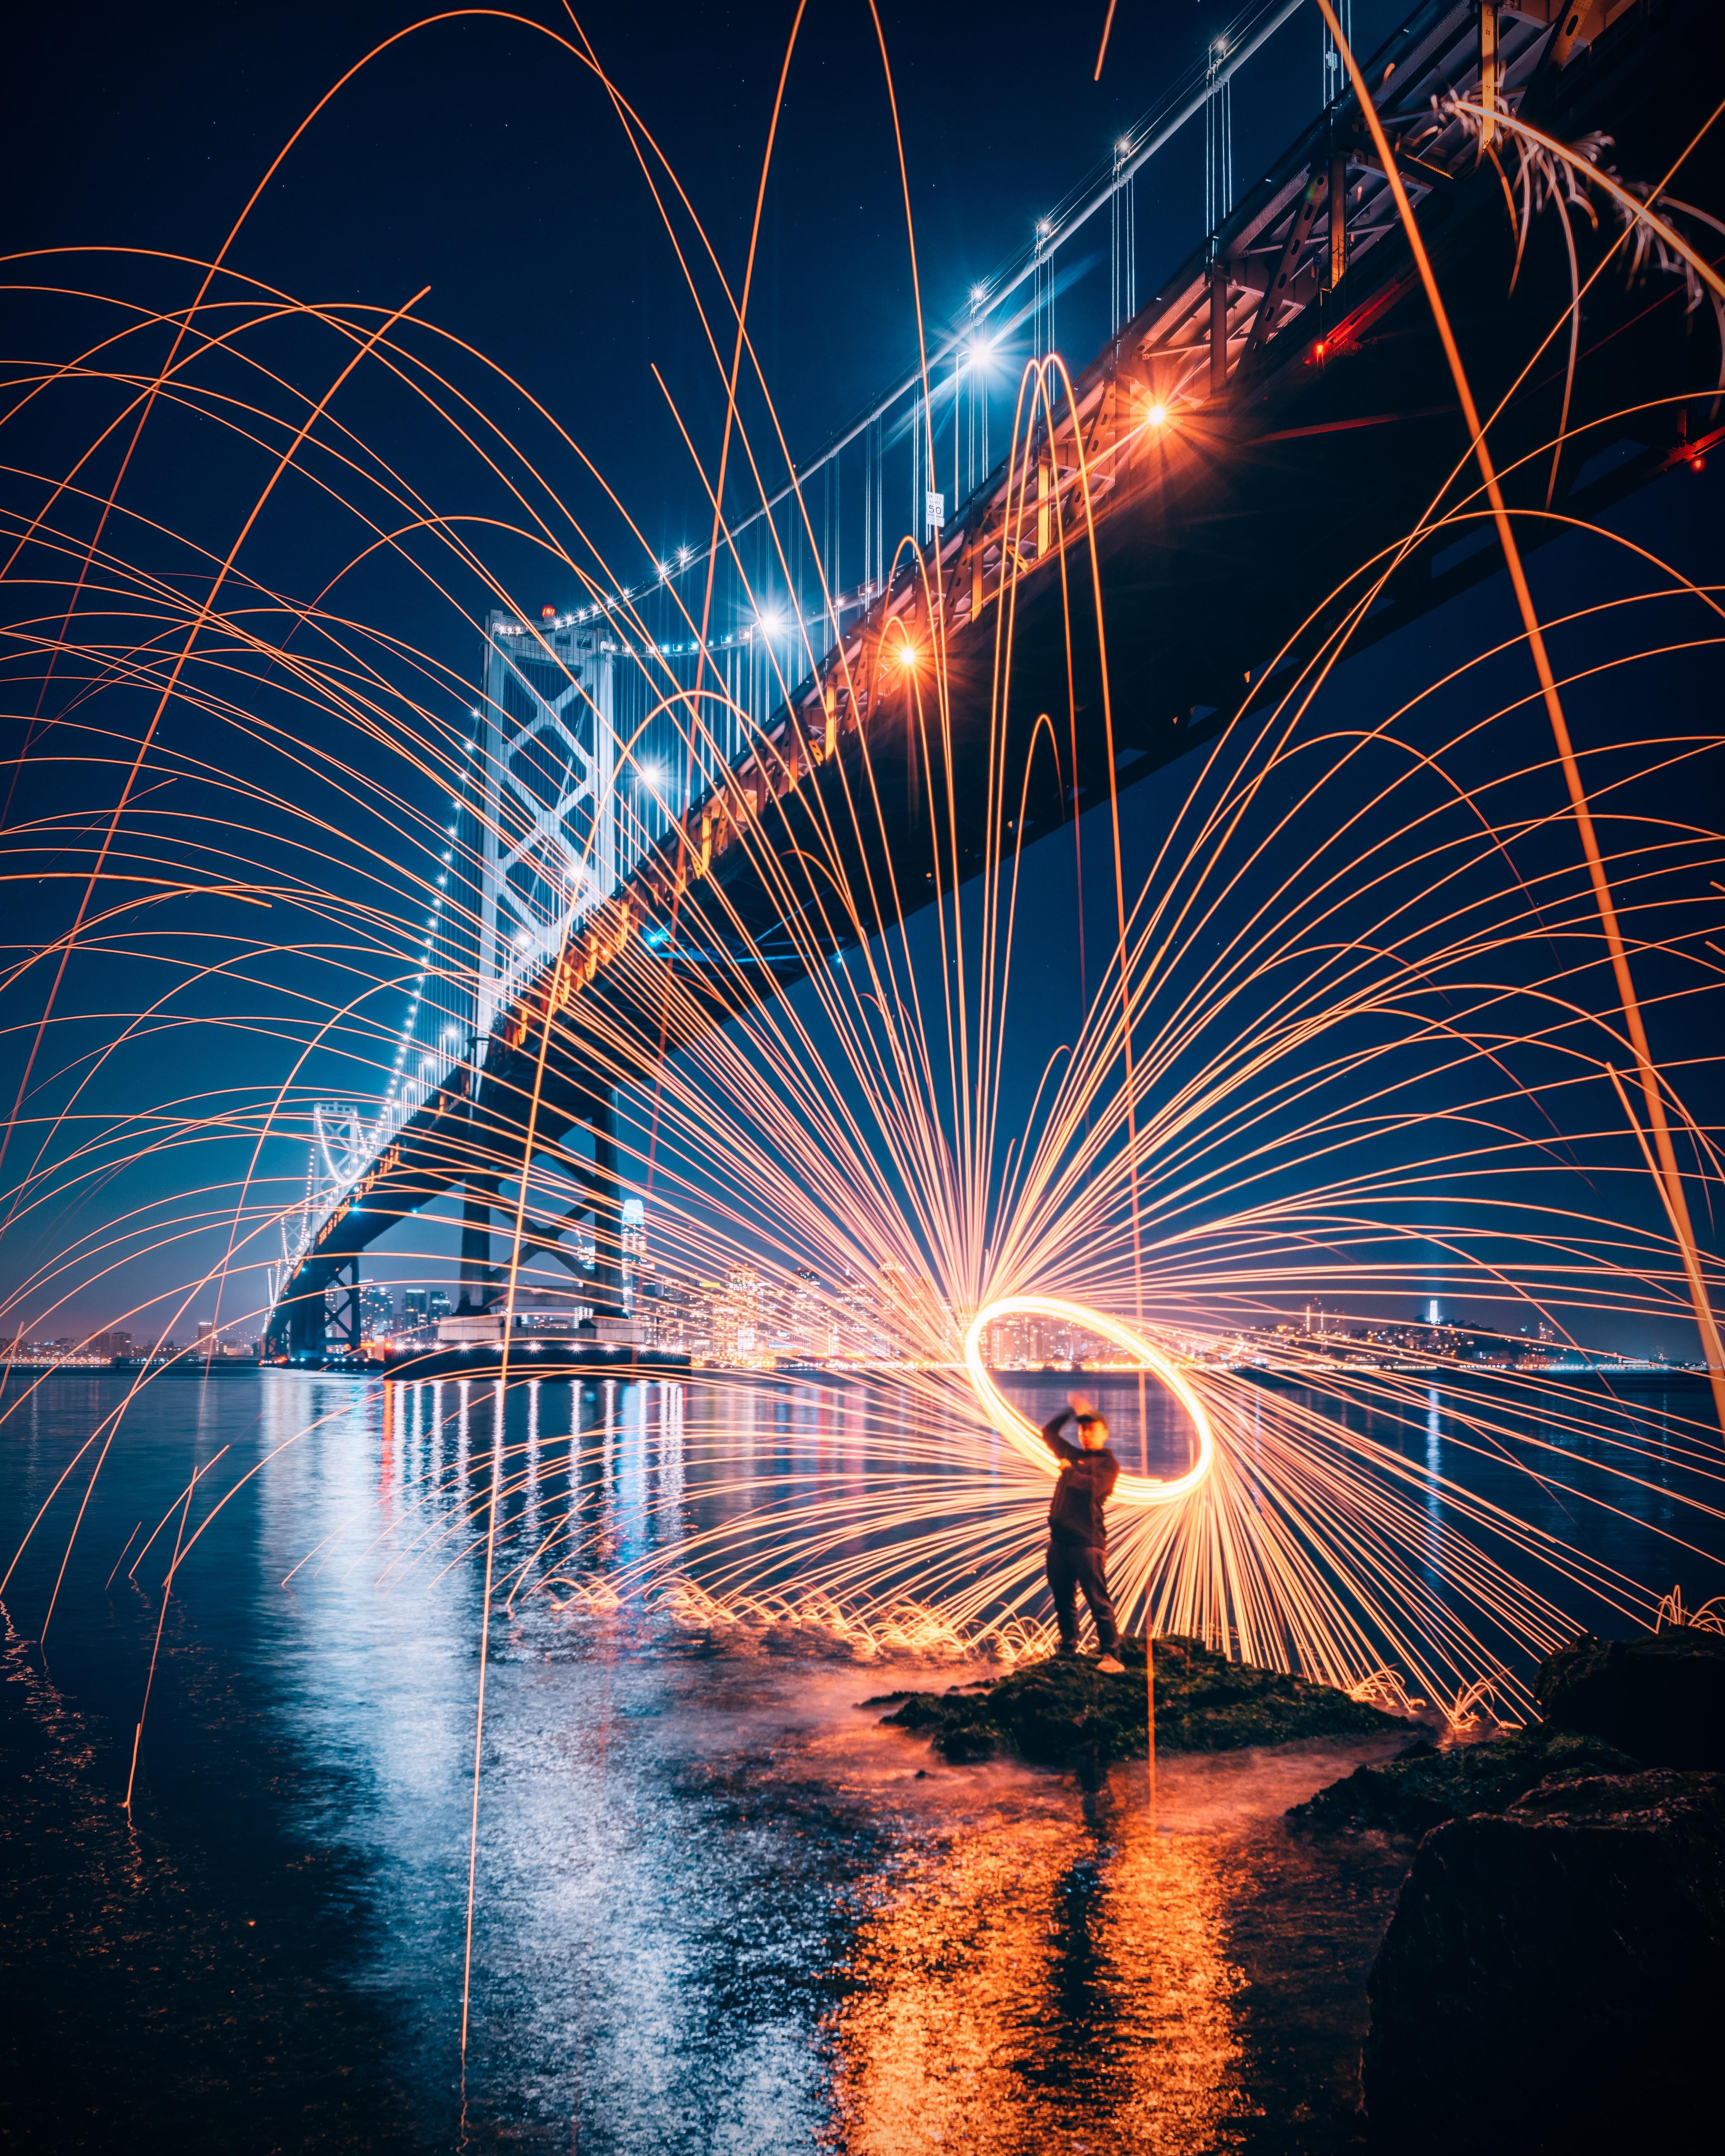 Itap Of A Firebender Light Painting Photography Steel Wool Photography City Life Photography